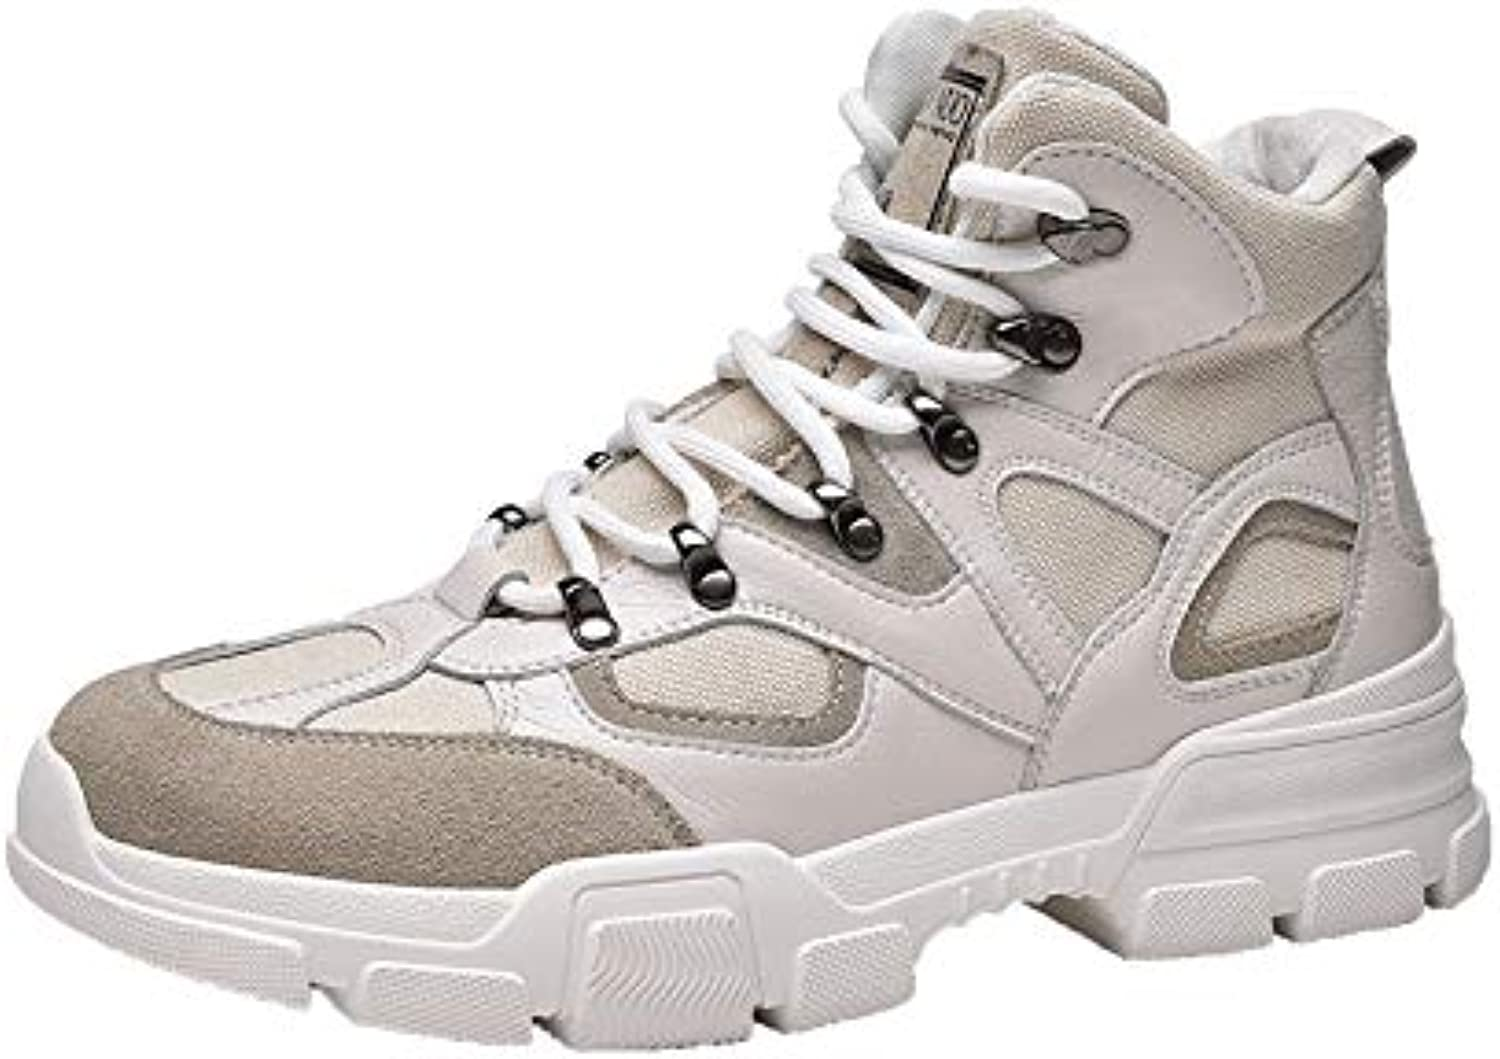 LOVDRAM Boots Men's Autumn White In The Martin Boots Men'S Wild Canvas Fashion Student Casual Sports High shoes